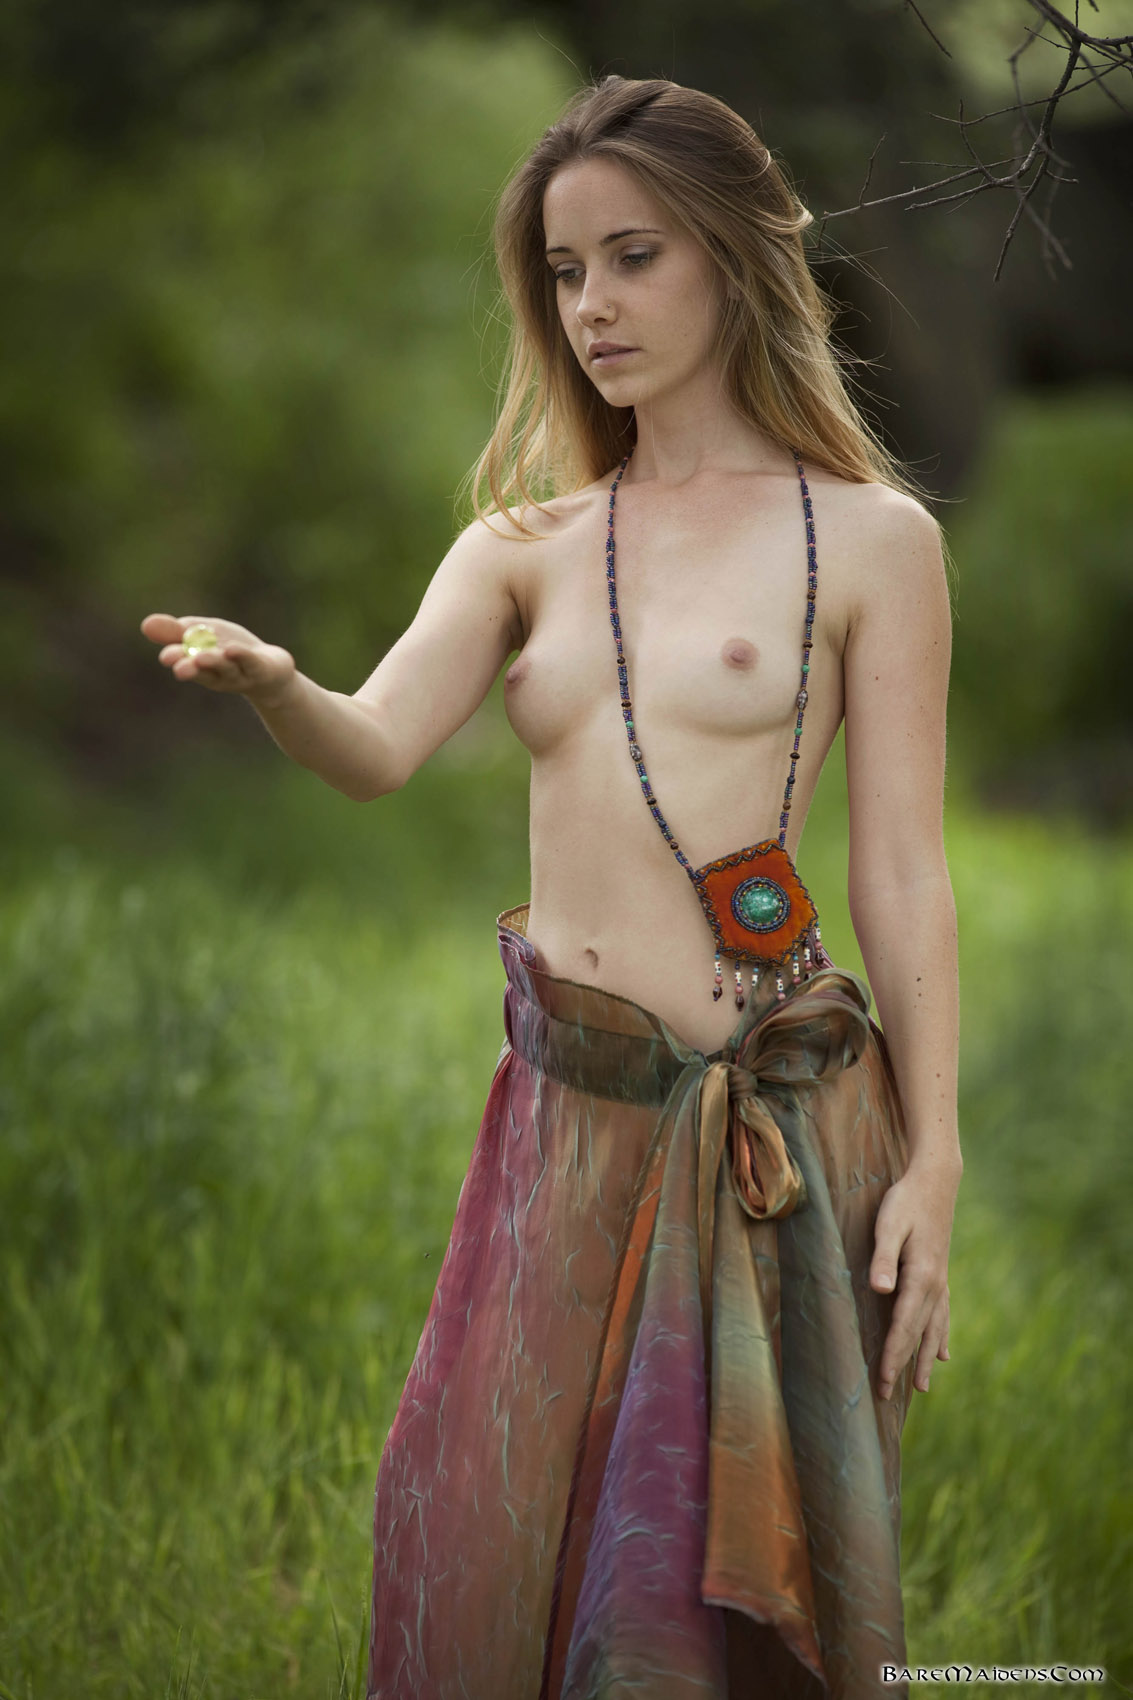 Young maiden nude